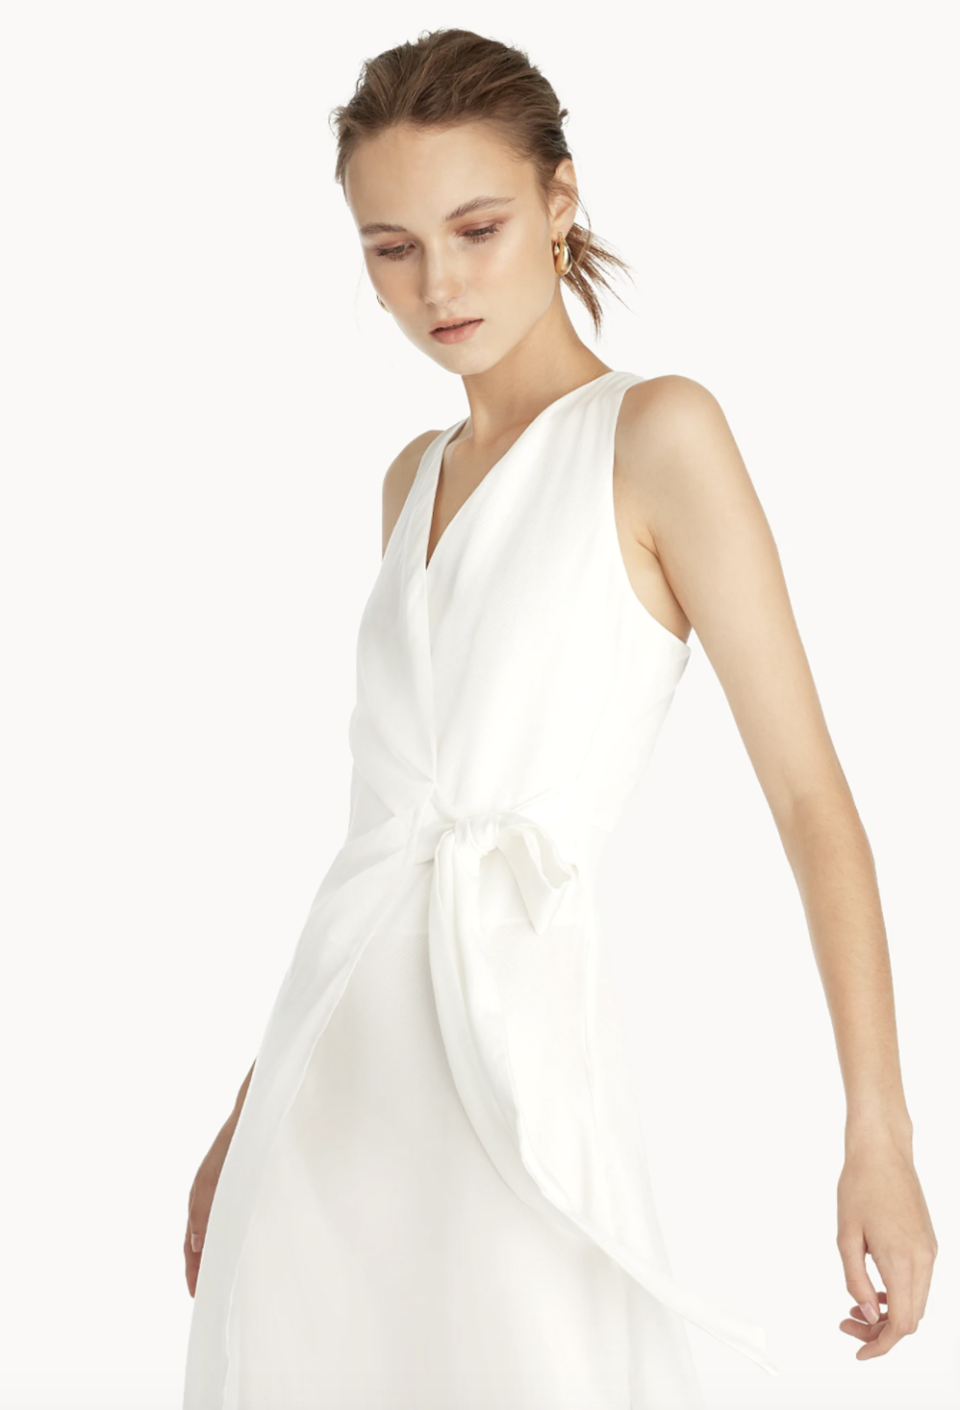 Pomelo Premium Sleeveless Wrap Dress. (PHOTO: Pomelo)